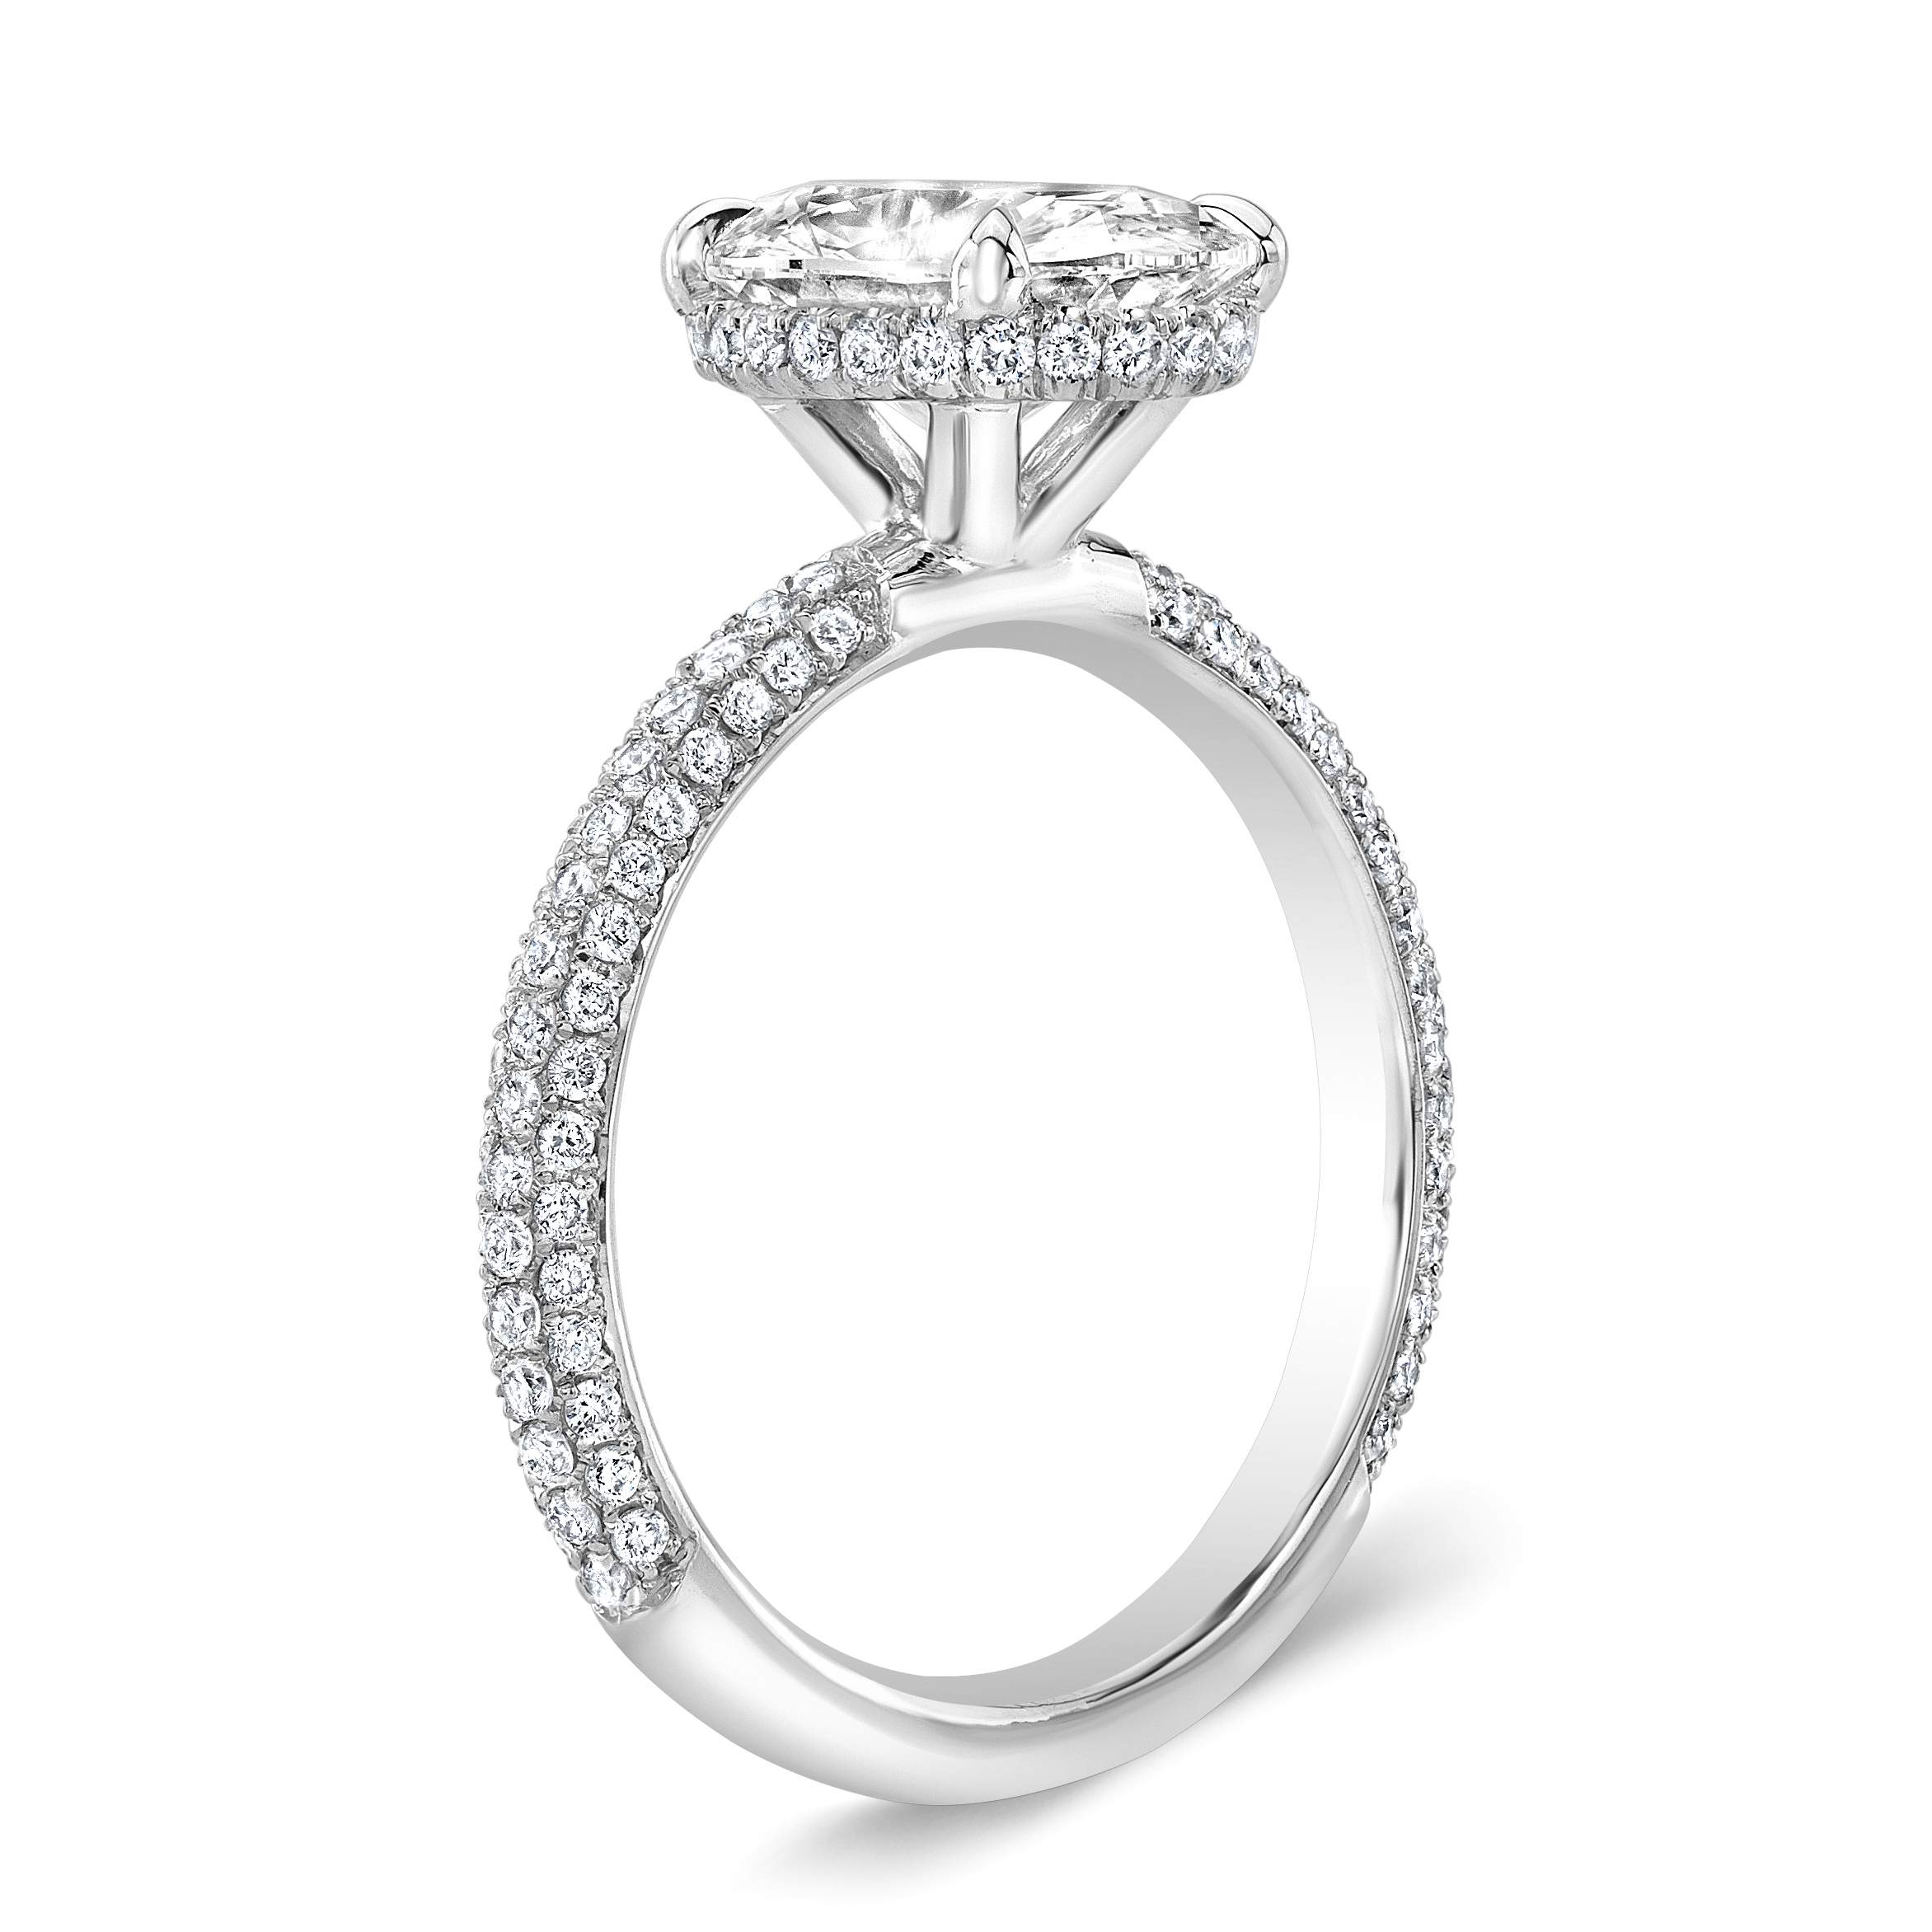 Natural Under Halo 3 Row Micro Pave Setting Diamond Engagement Ring